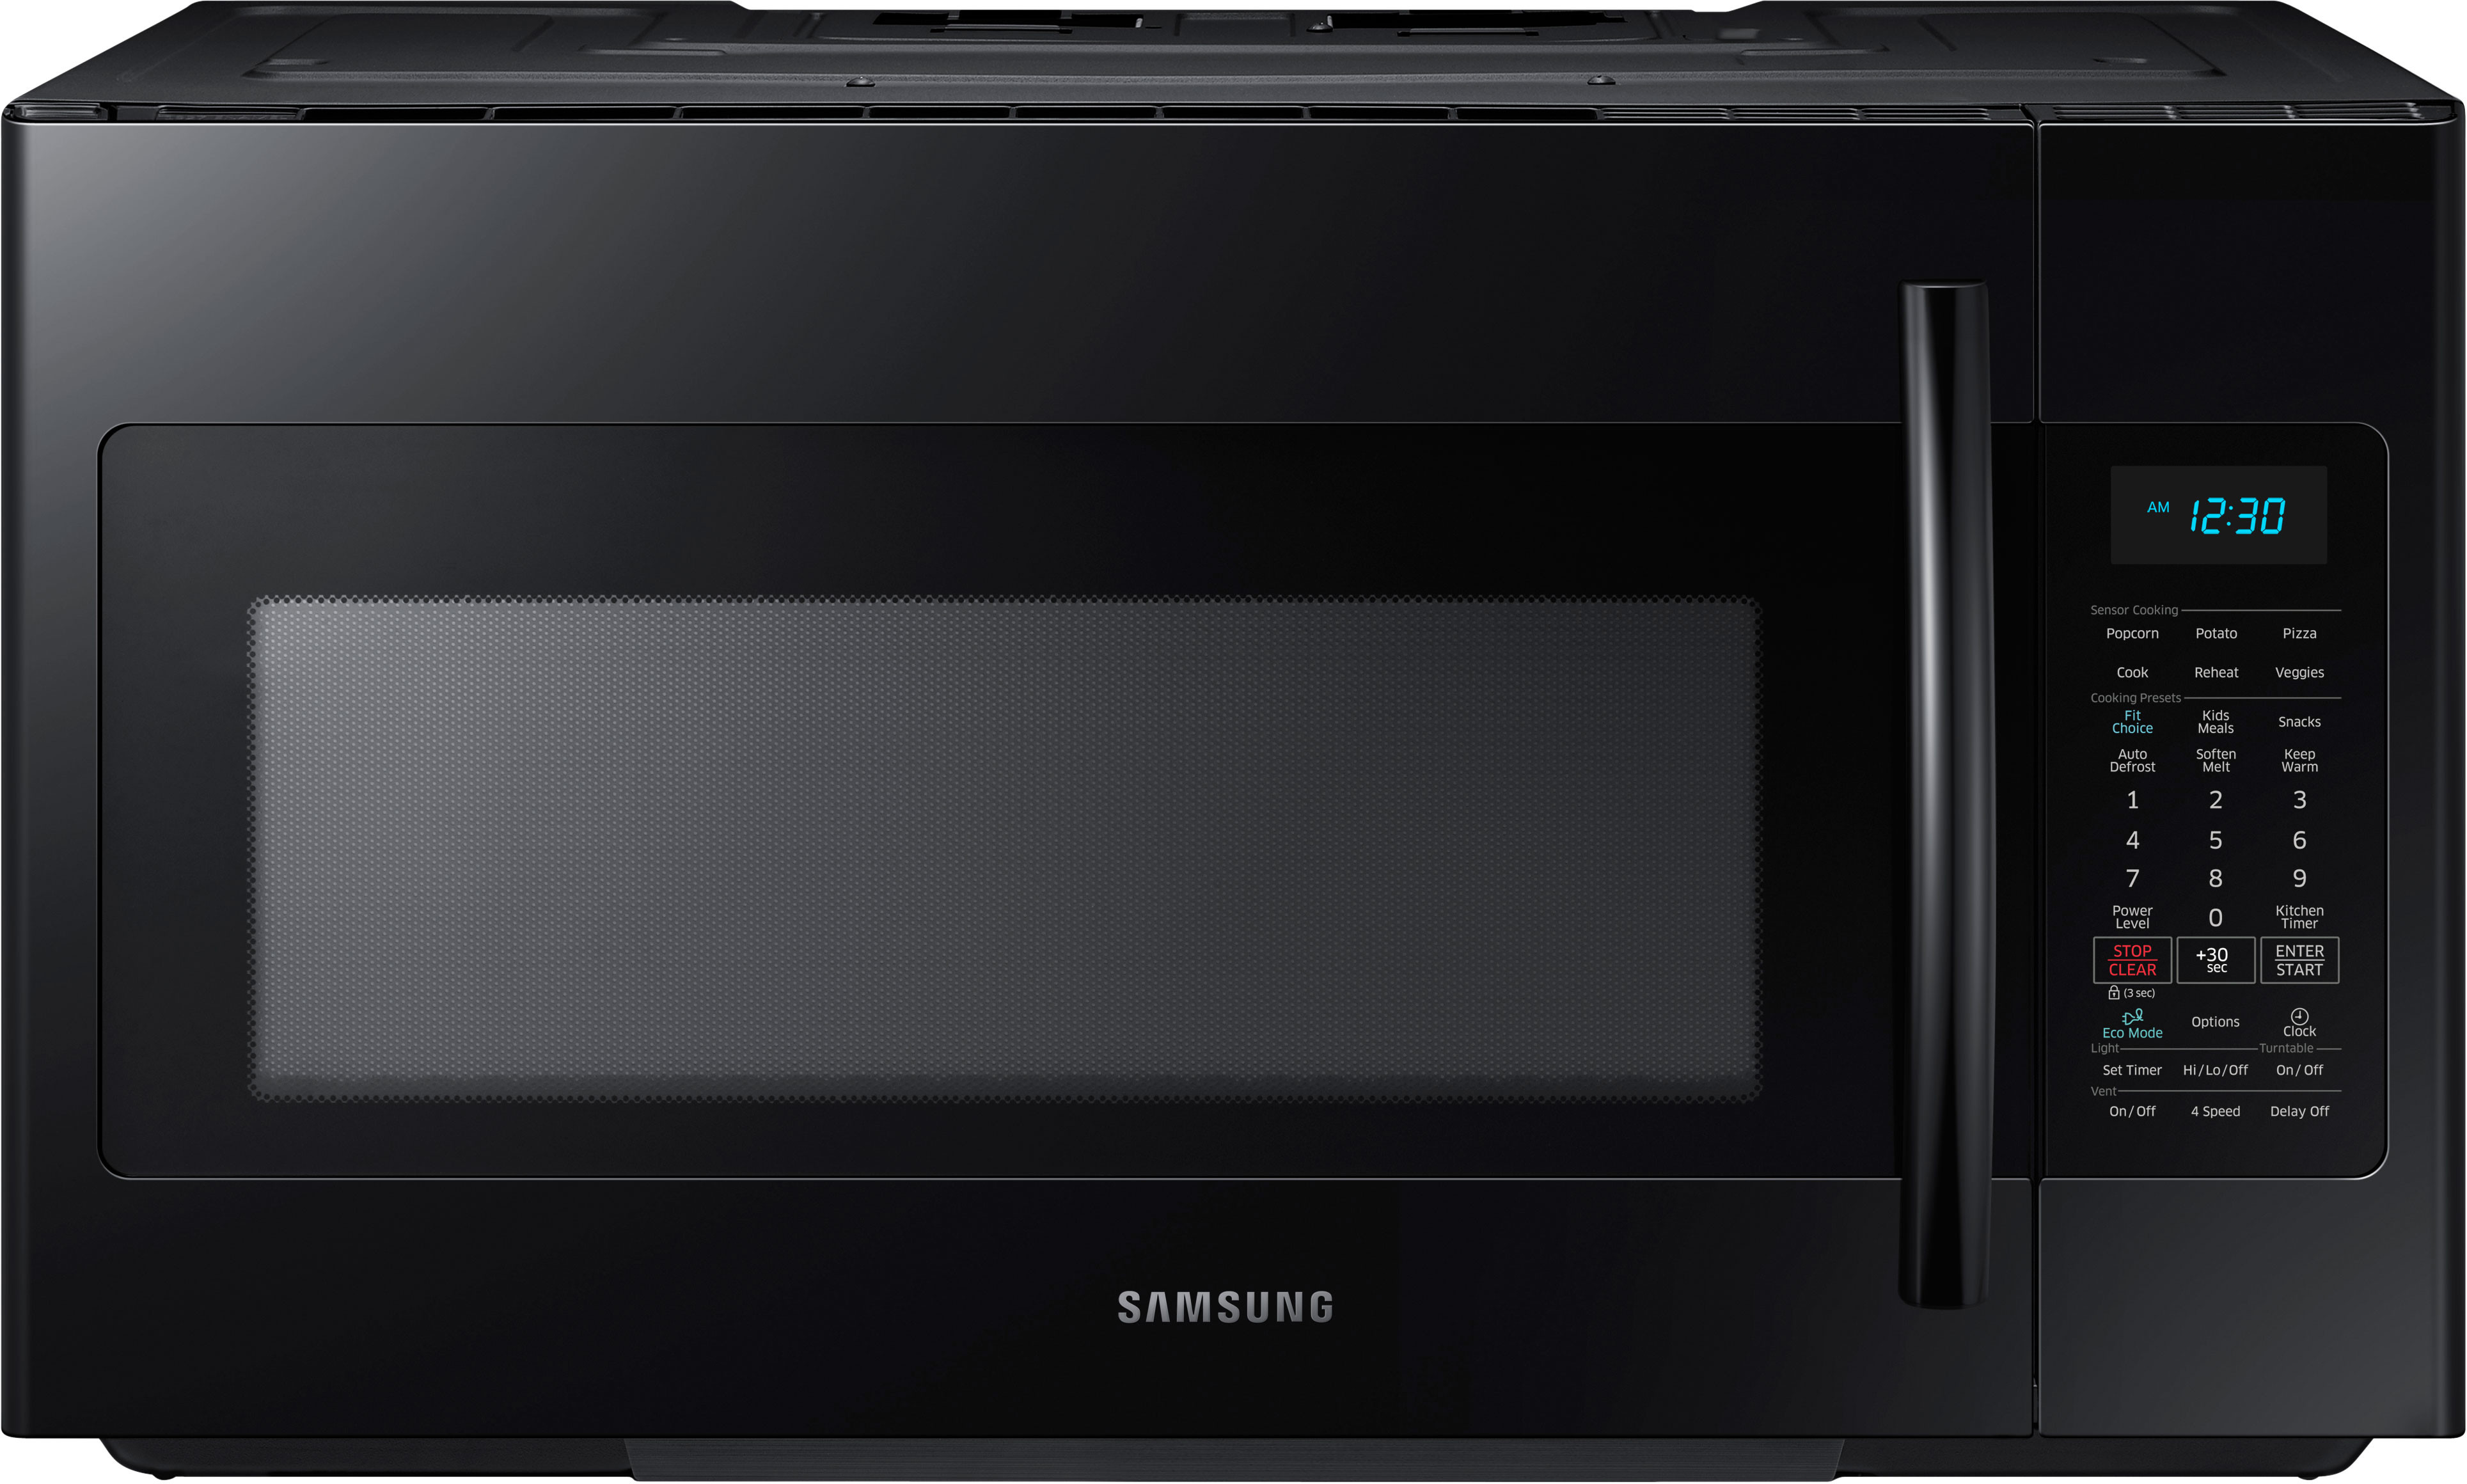 Samsung Me18h704sfb 1 8 Cu Ft Over The Range Microwave Oven With 1 000 Cooking Watts 10 Power Levels Four Speed 400 Cfm Venting System 2 Stage Programmable Range Microwave Microwave Black Microwave